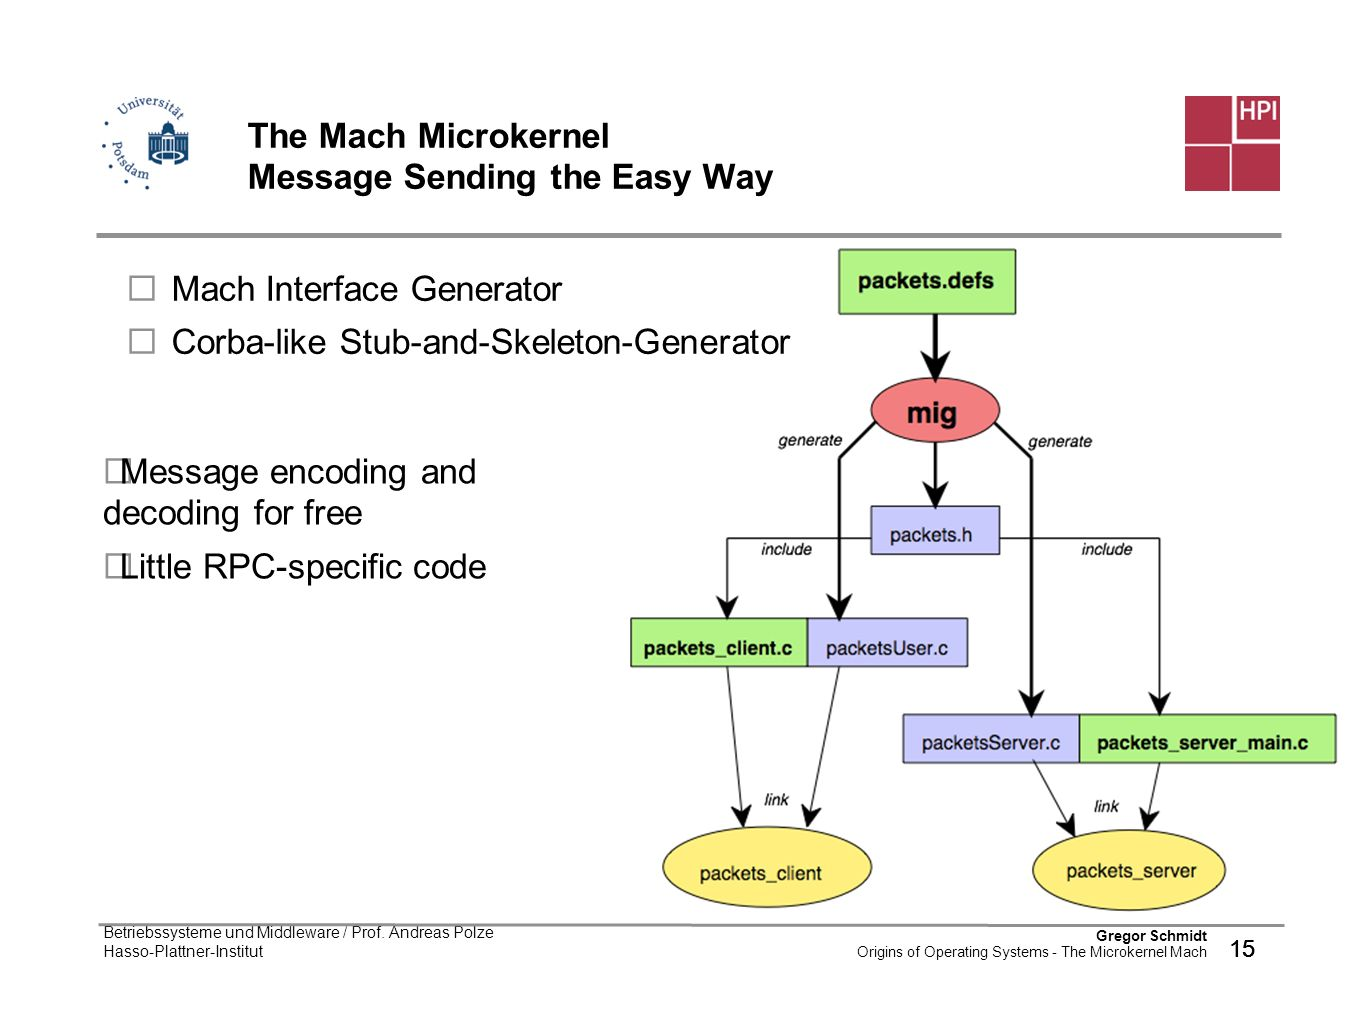 The Mach Microkernel Message Sending the Easy Way